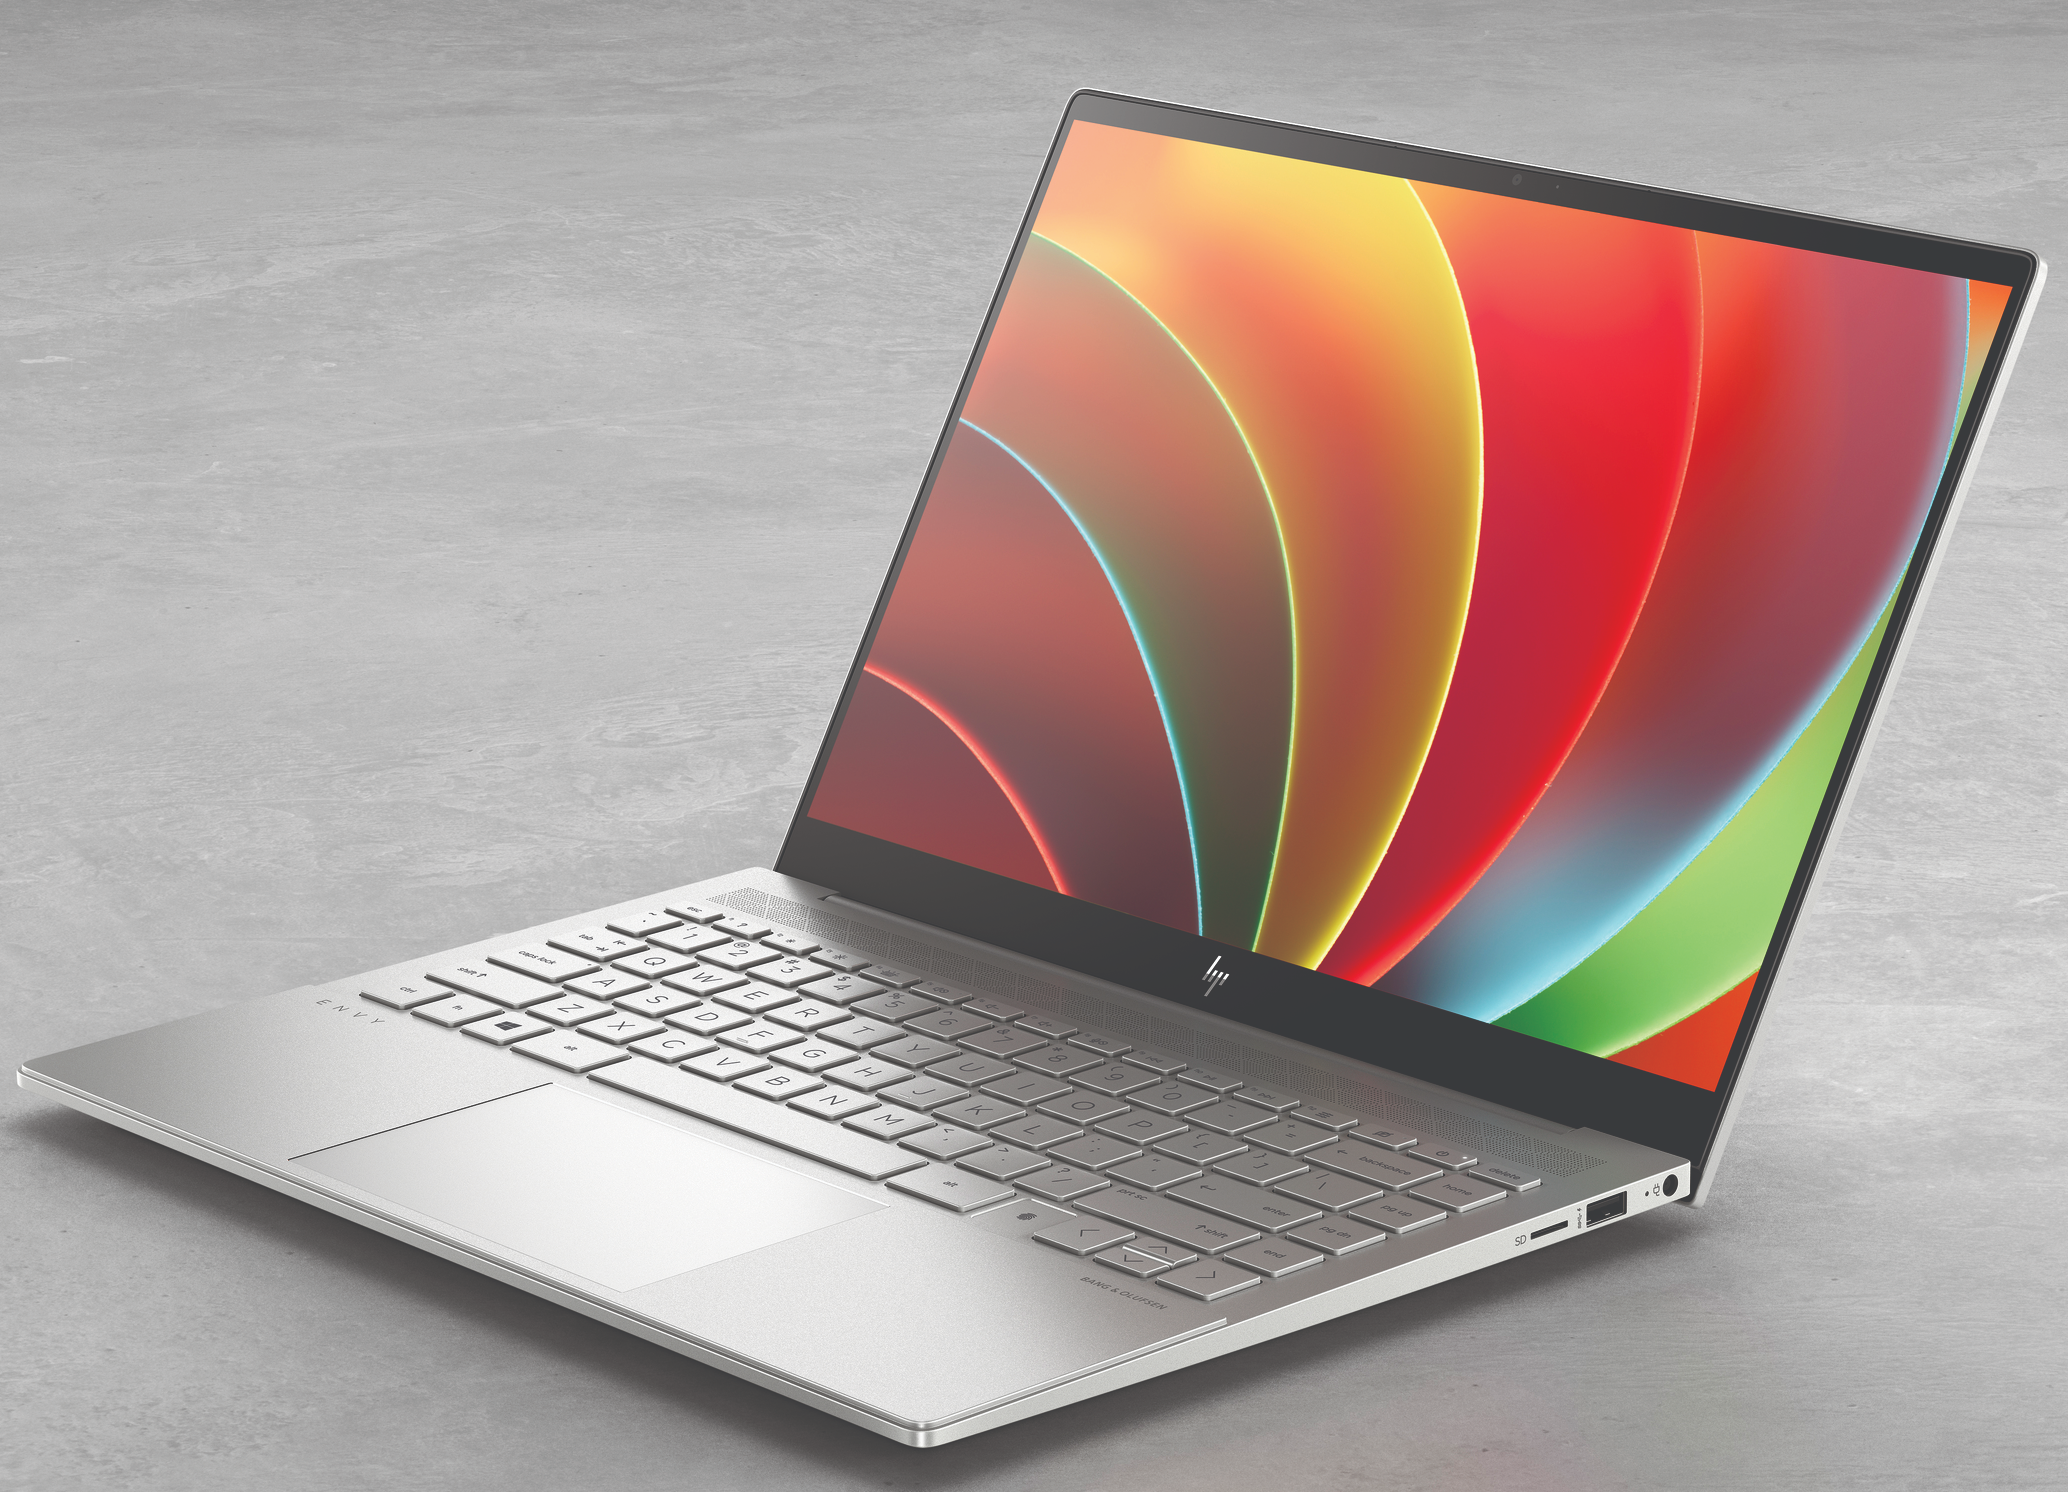 HP Envy 14 2021 challenges MacBook Pro M1 with killer display, 16-hour battery